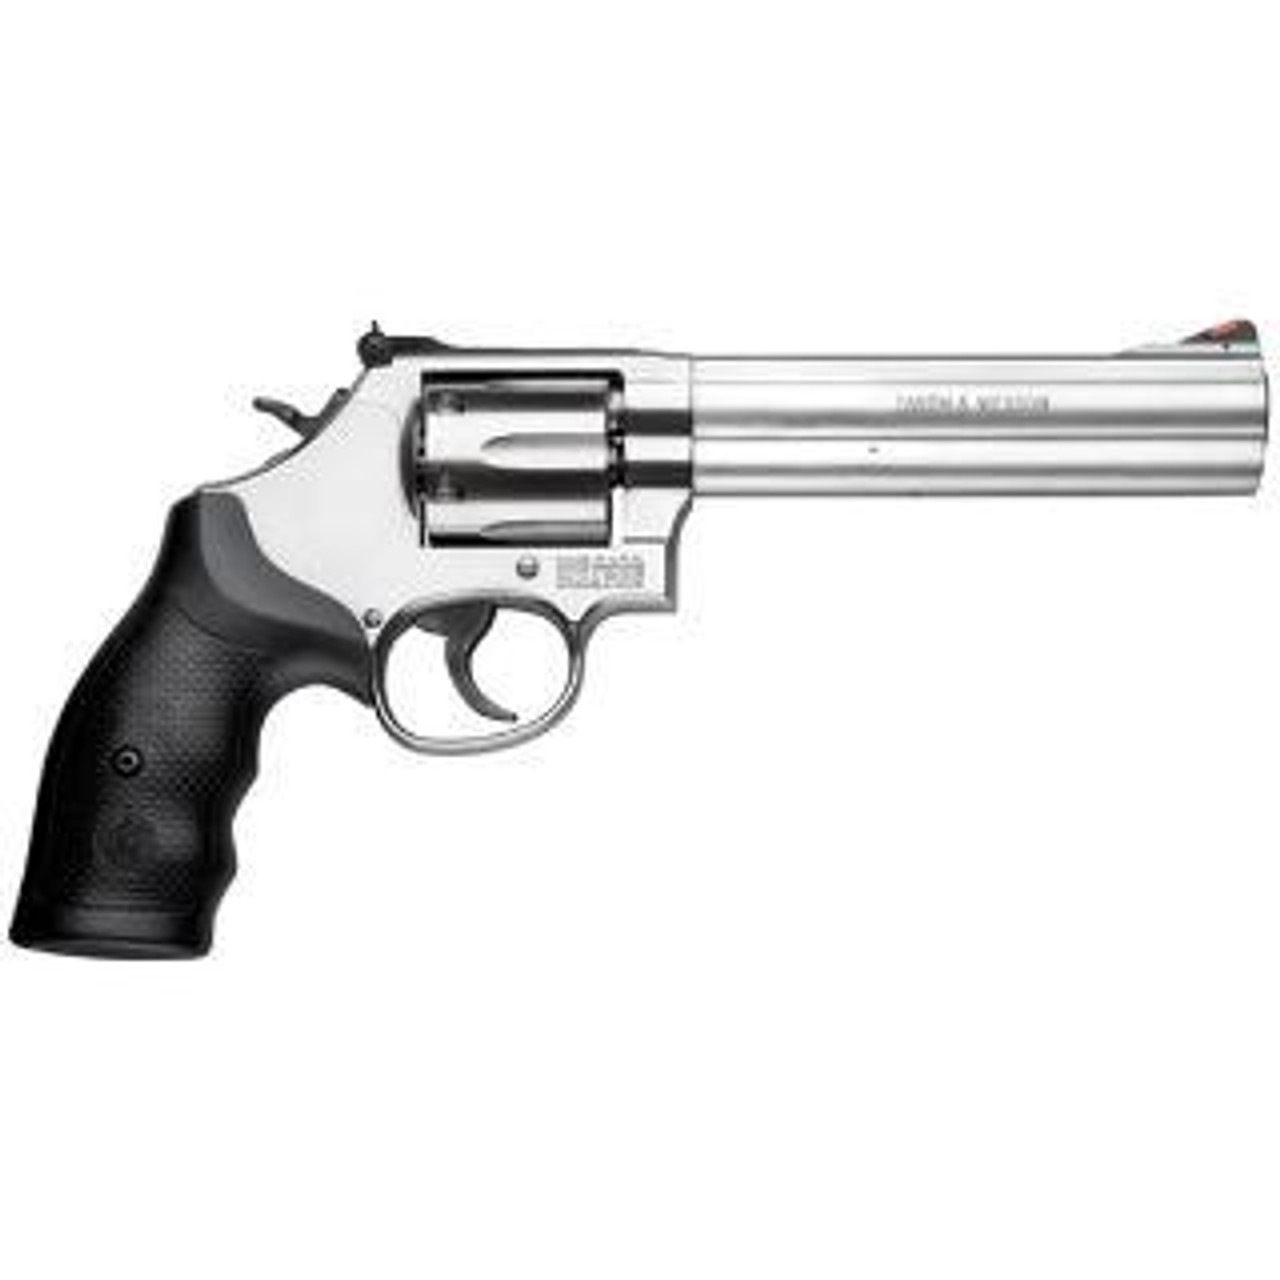 Smith & Wesson 686-6 6inch CALIFORNIA LEGAL - .357 Mag